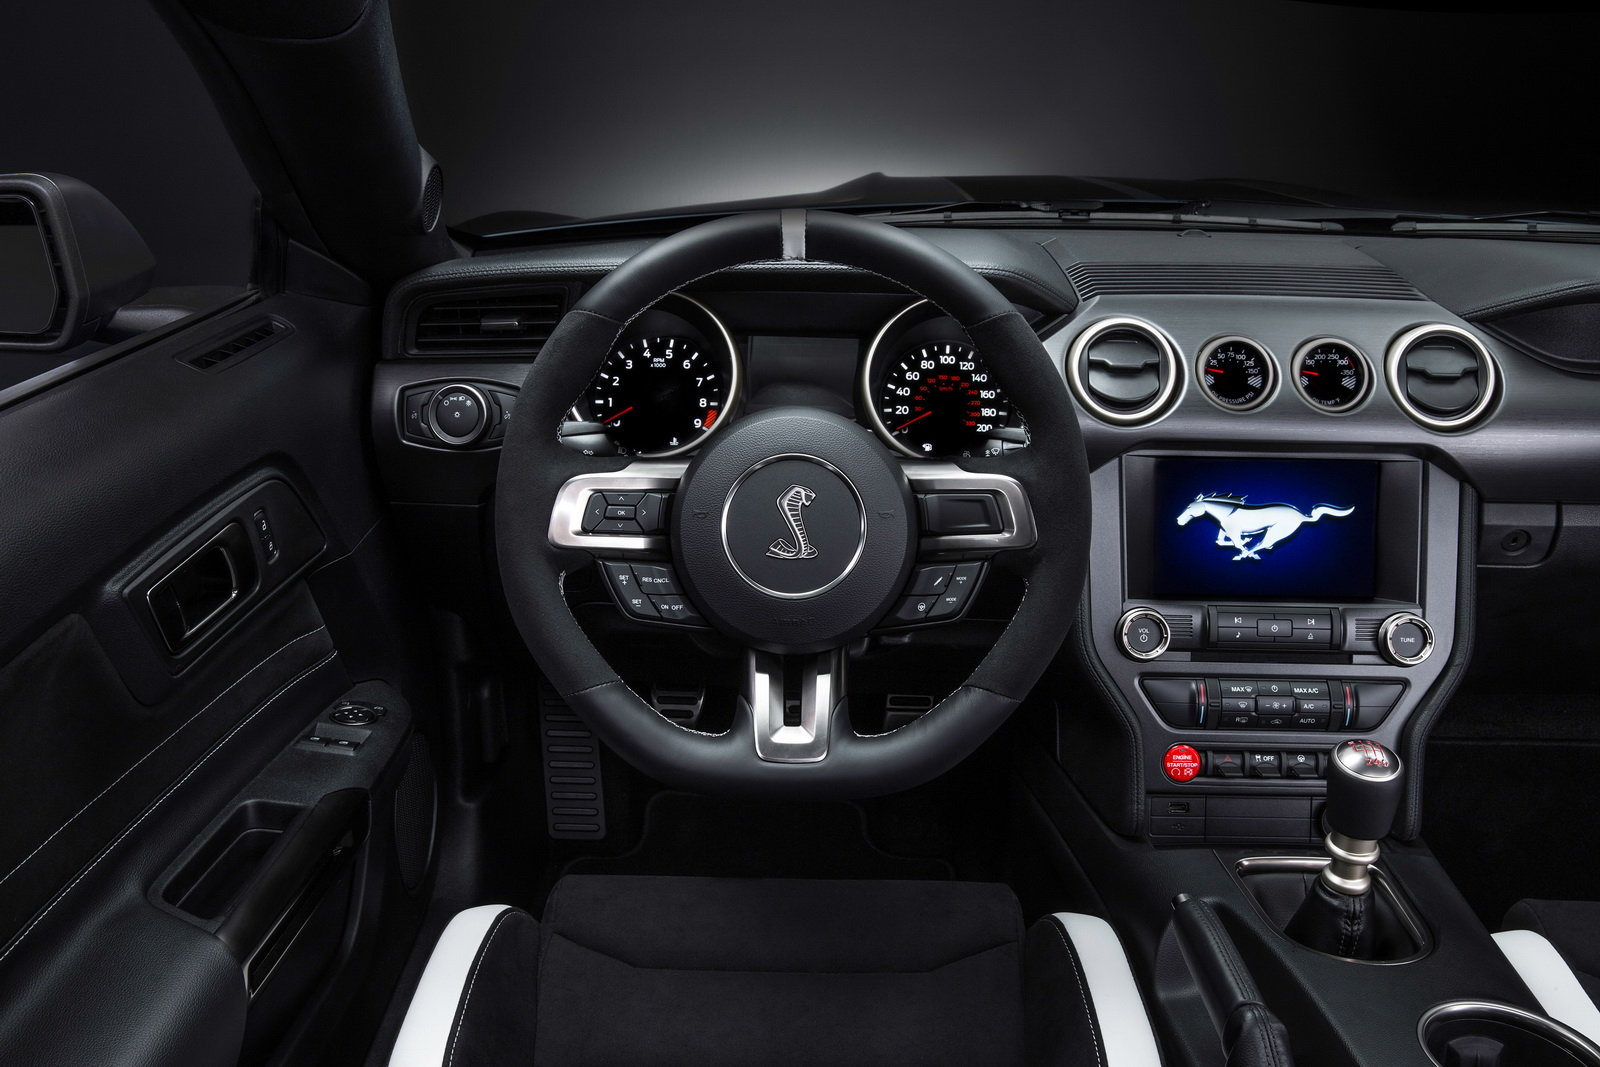 2016 Ford Mustang Shelby Gt350r Cockpit And Speedometer (Photo 23 of 47)